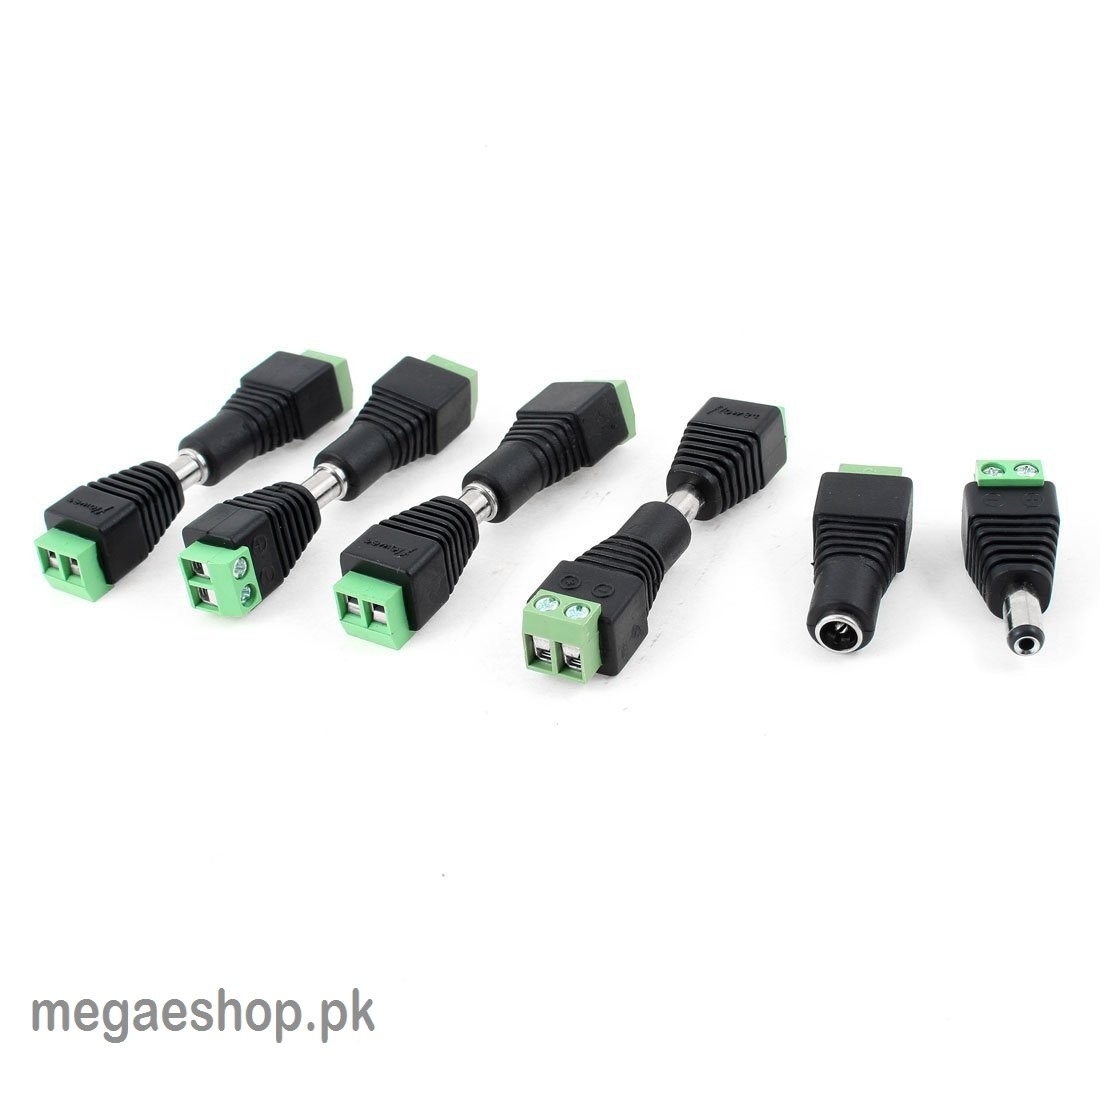 Dc Power Solderless Plug Adapter Pair 12v For Cctv Cameras Ptcl 10pcs Pigtail Male 5 2 1mm Cable Wire Modem Buy In Pakistan